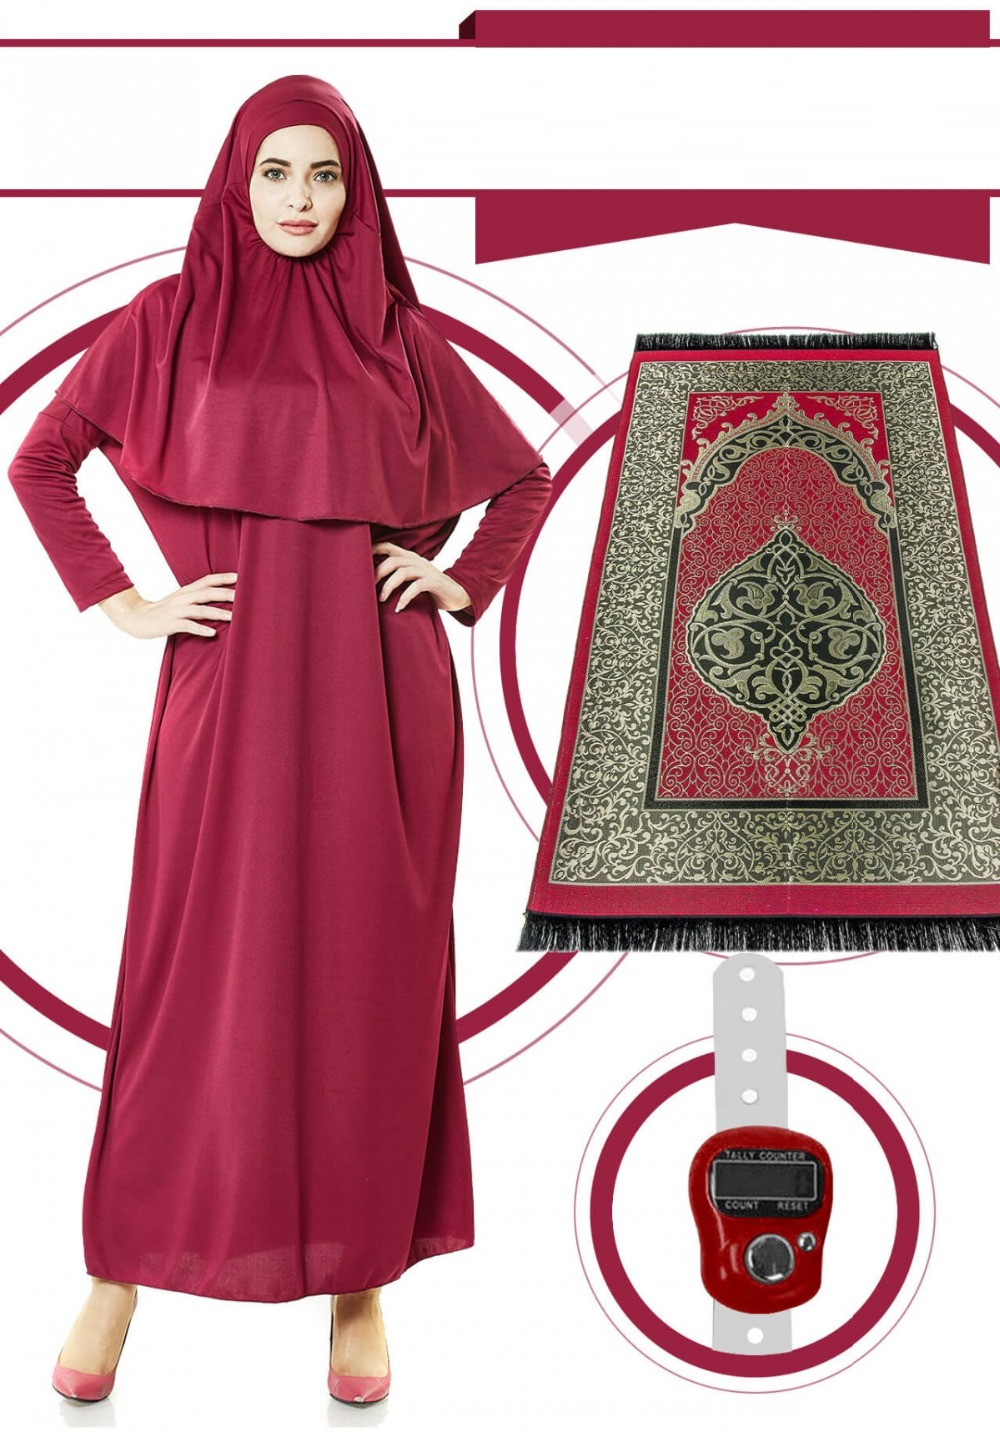 LINA Women Praying Dress ONE PIECE with Hijab + Prayer Rug + Digital Tasbeeh (WITH BAG) Muslim Lady Prayer Islamic Abaya Easy